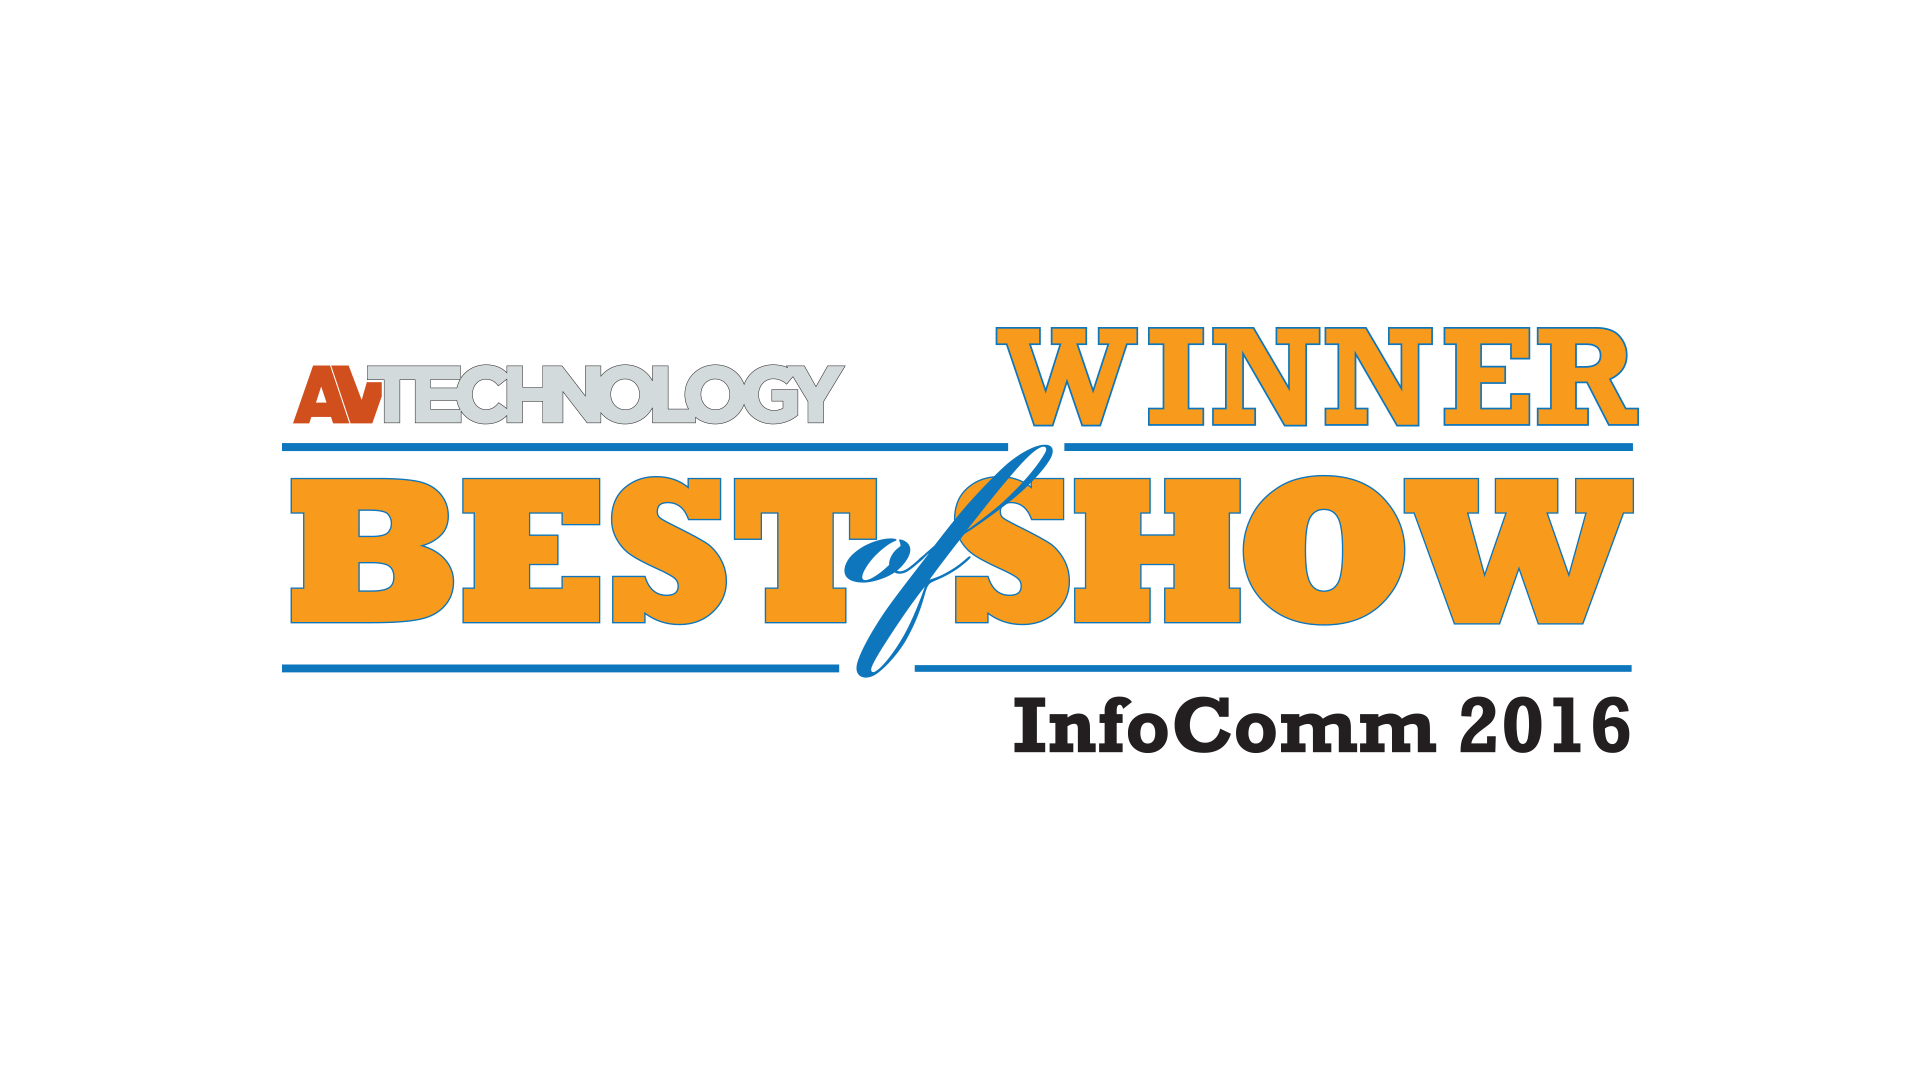 AV Technology Best of Show winner at Infocomm 2016